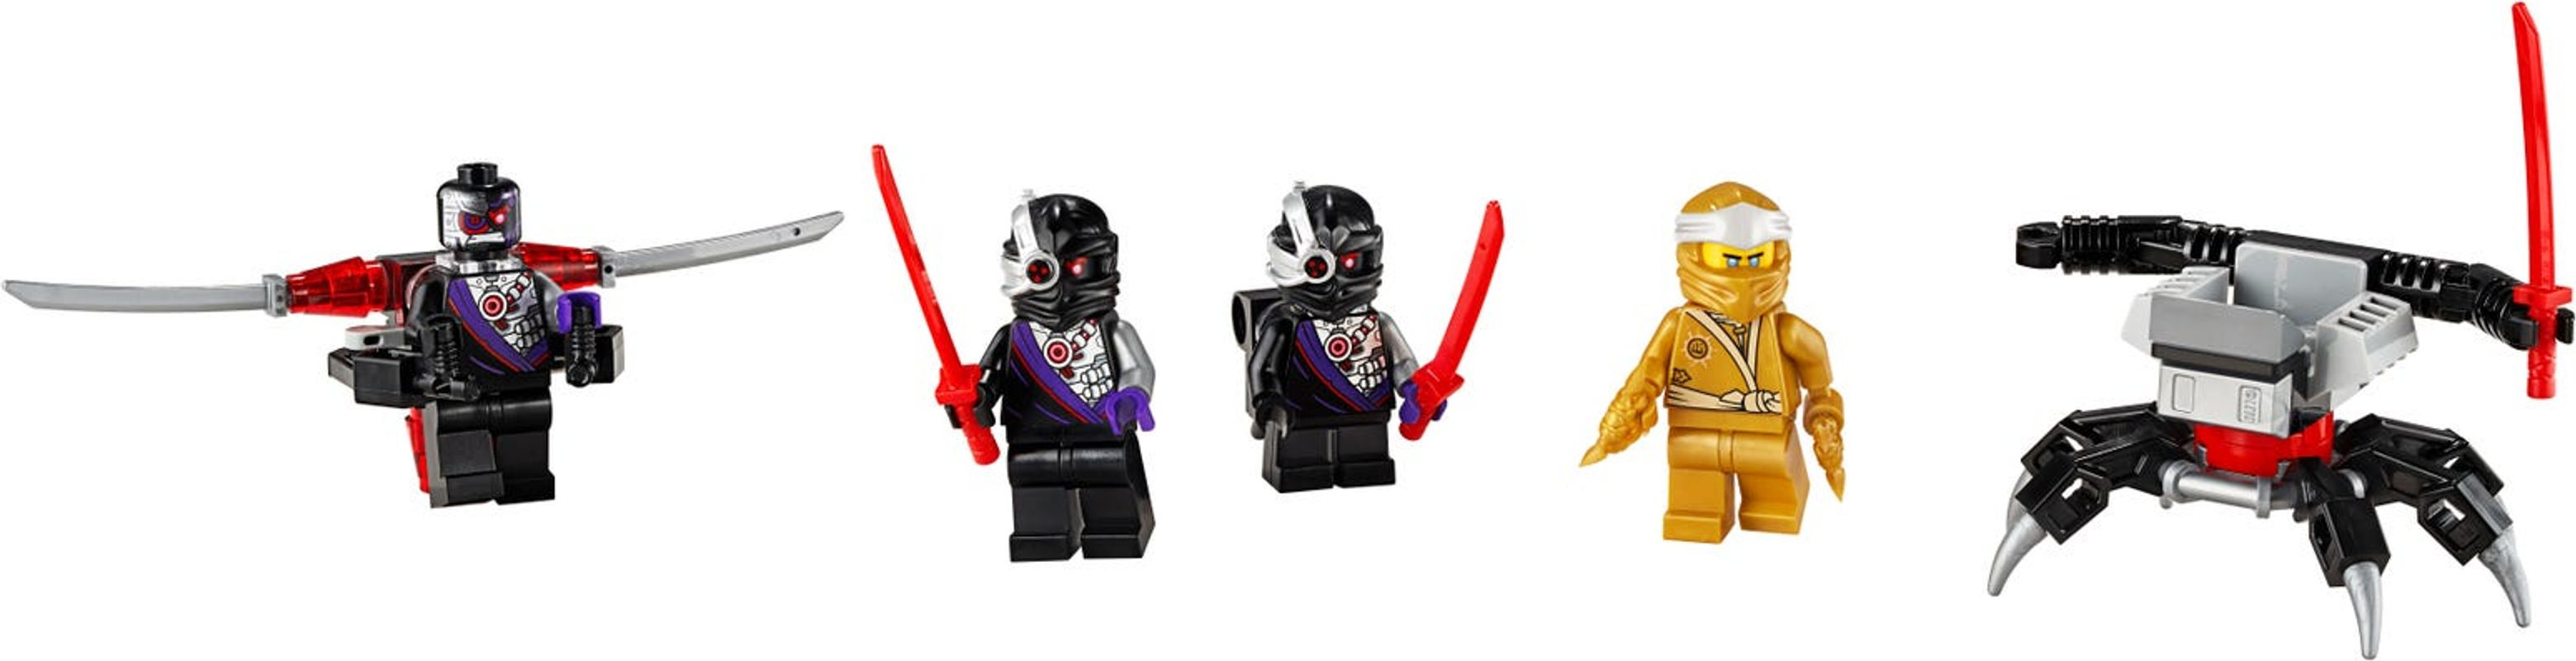 Golden Zane Minifigure Accessory Set minifigures